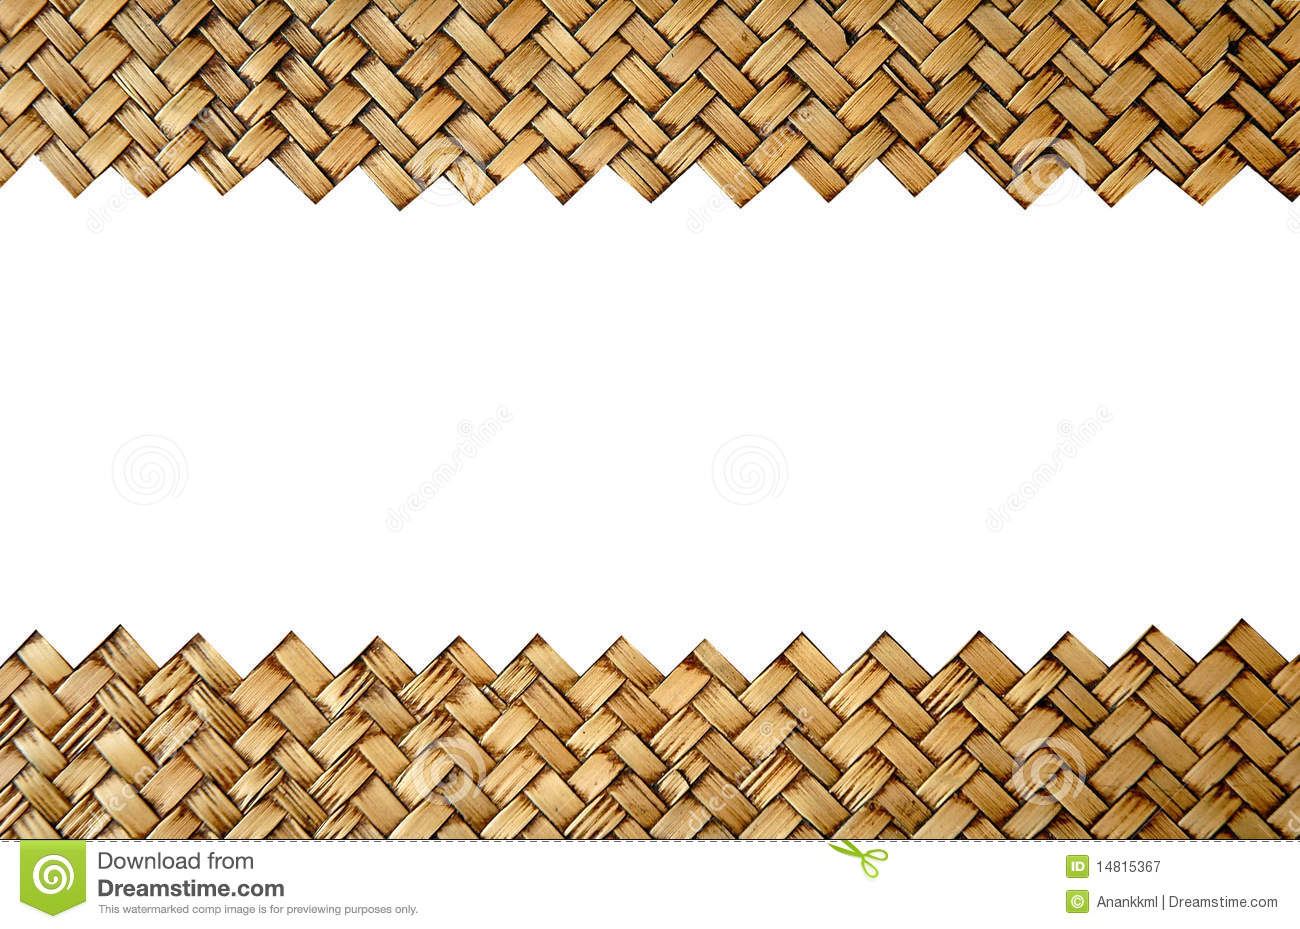 Bamboo handicraft royalty free stock photography image for Waste material handicraft